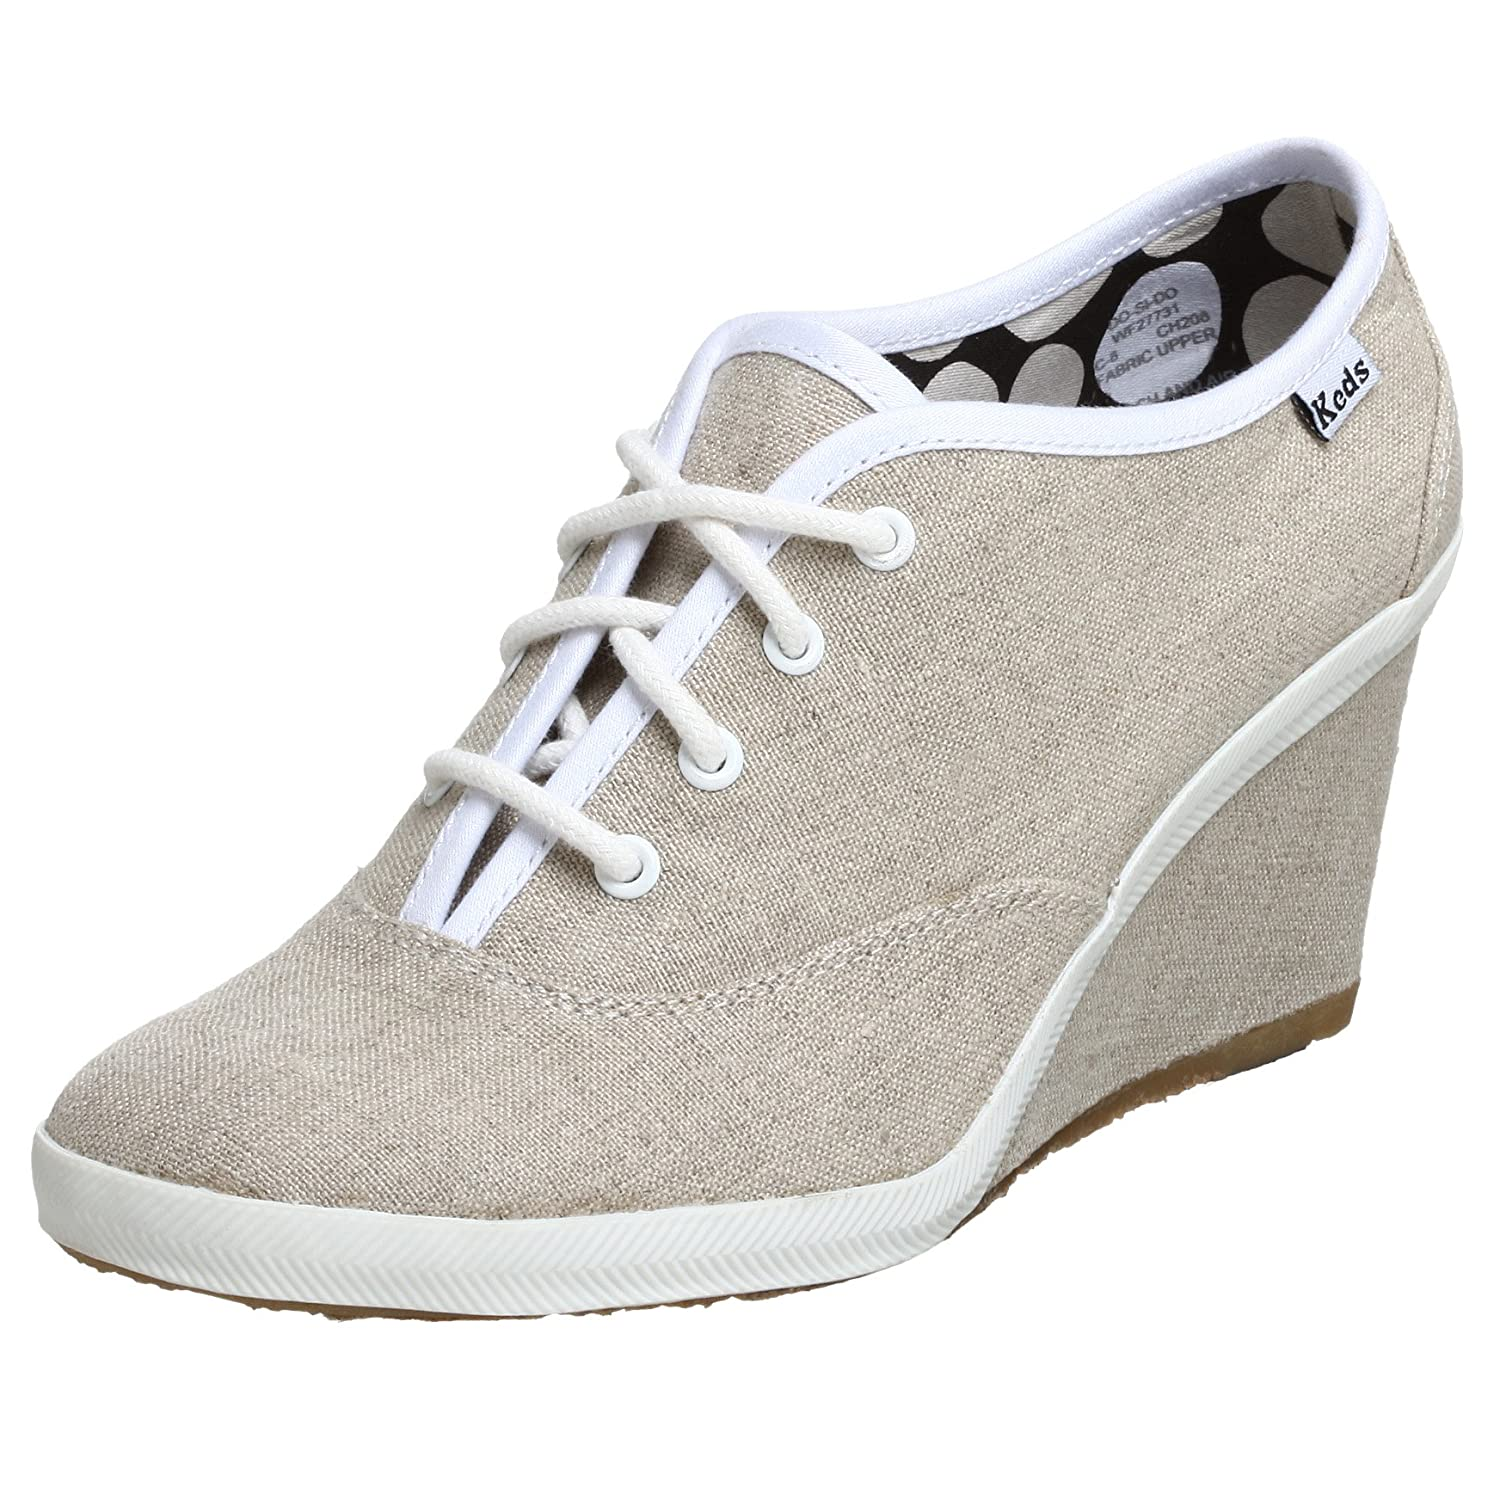 Keds Women's Do-Si-Do Wedge - Free Overnight Shipping & Return Shipping: Endless.com :  wedges shoes lace up keds